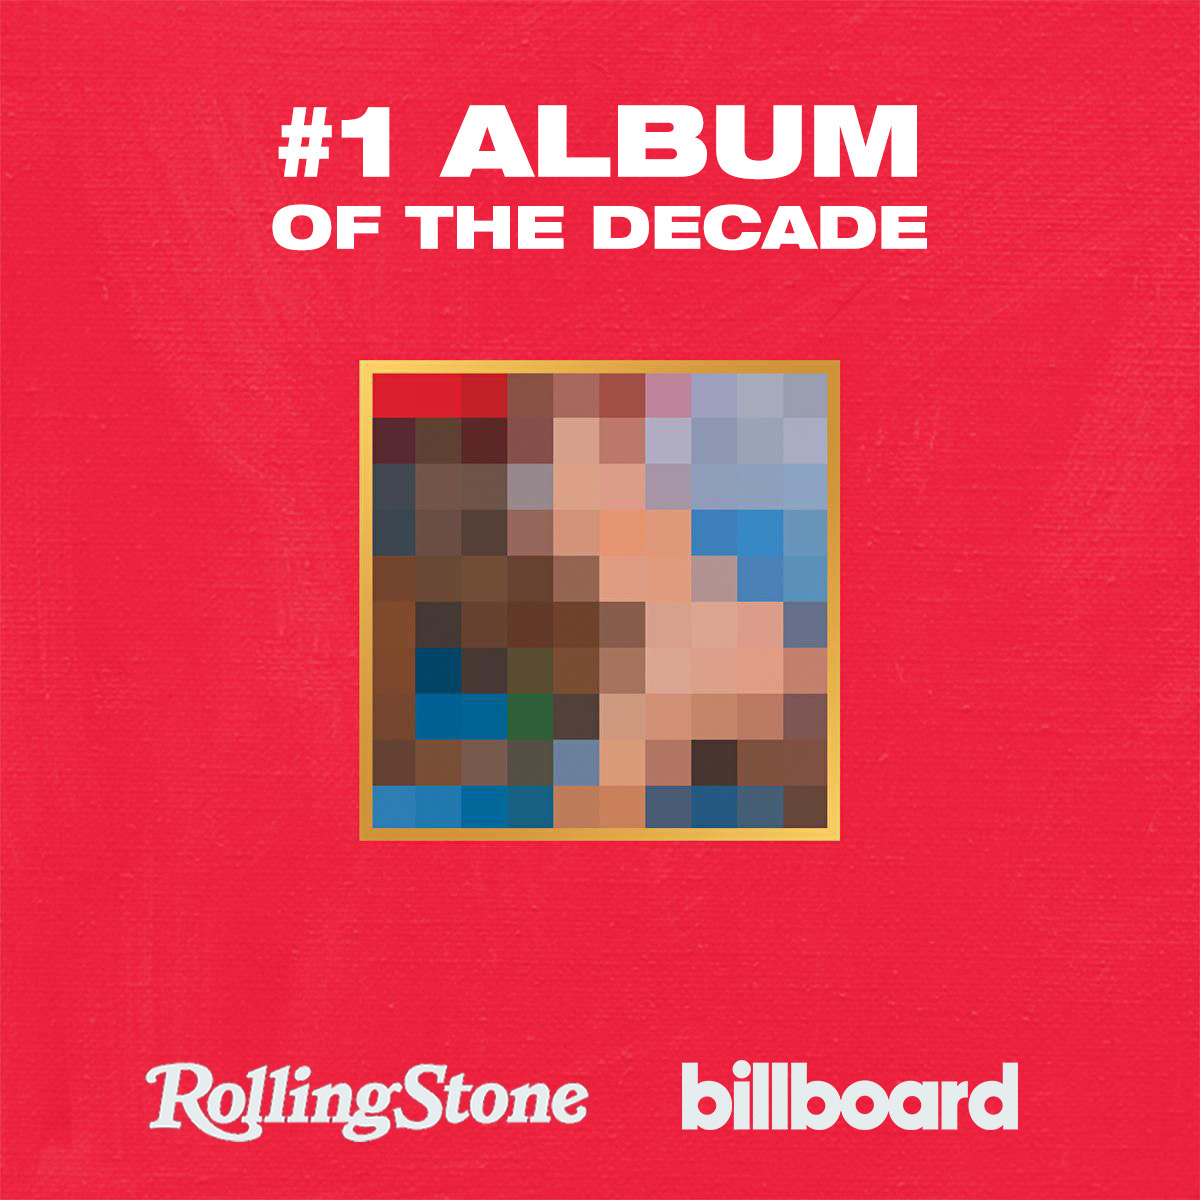 Kanye West's 'My Beautiful Dark Twisted Fantasy' has been named the #1 album of the decade by both Rolling Stone and Billboard. Congrats, @kanyewest!